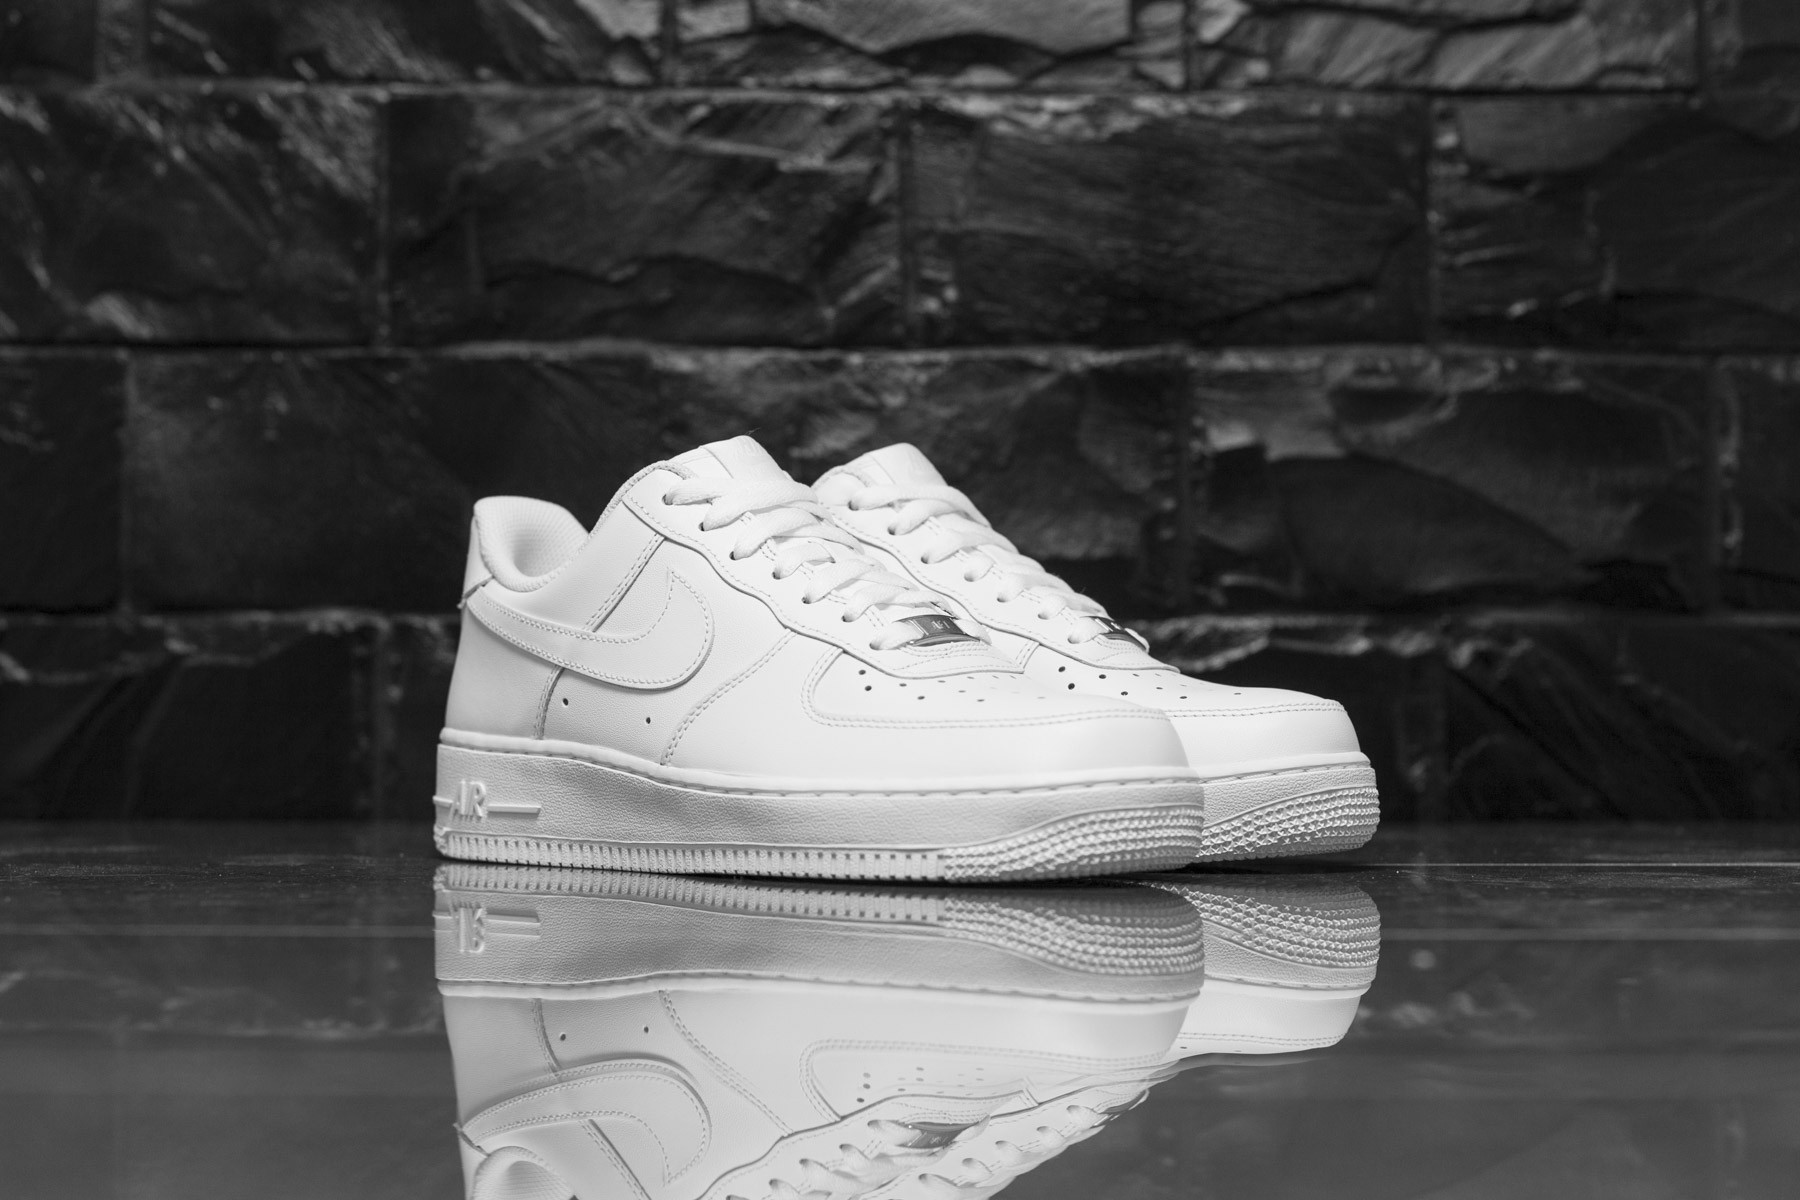 Nike Air Force 1 Low White (315122 111)